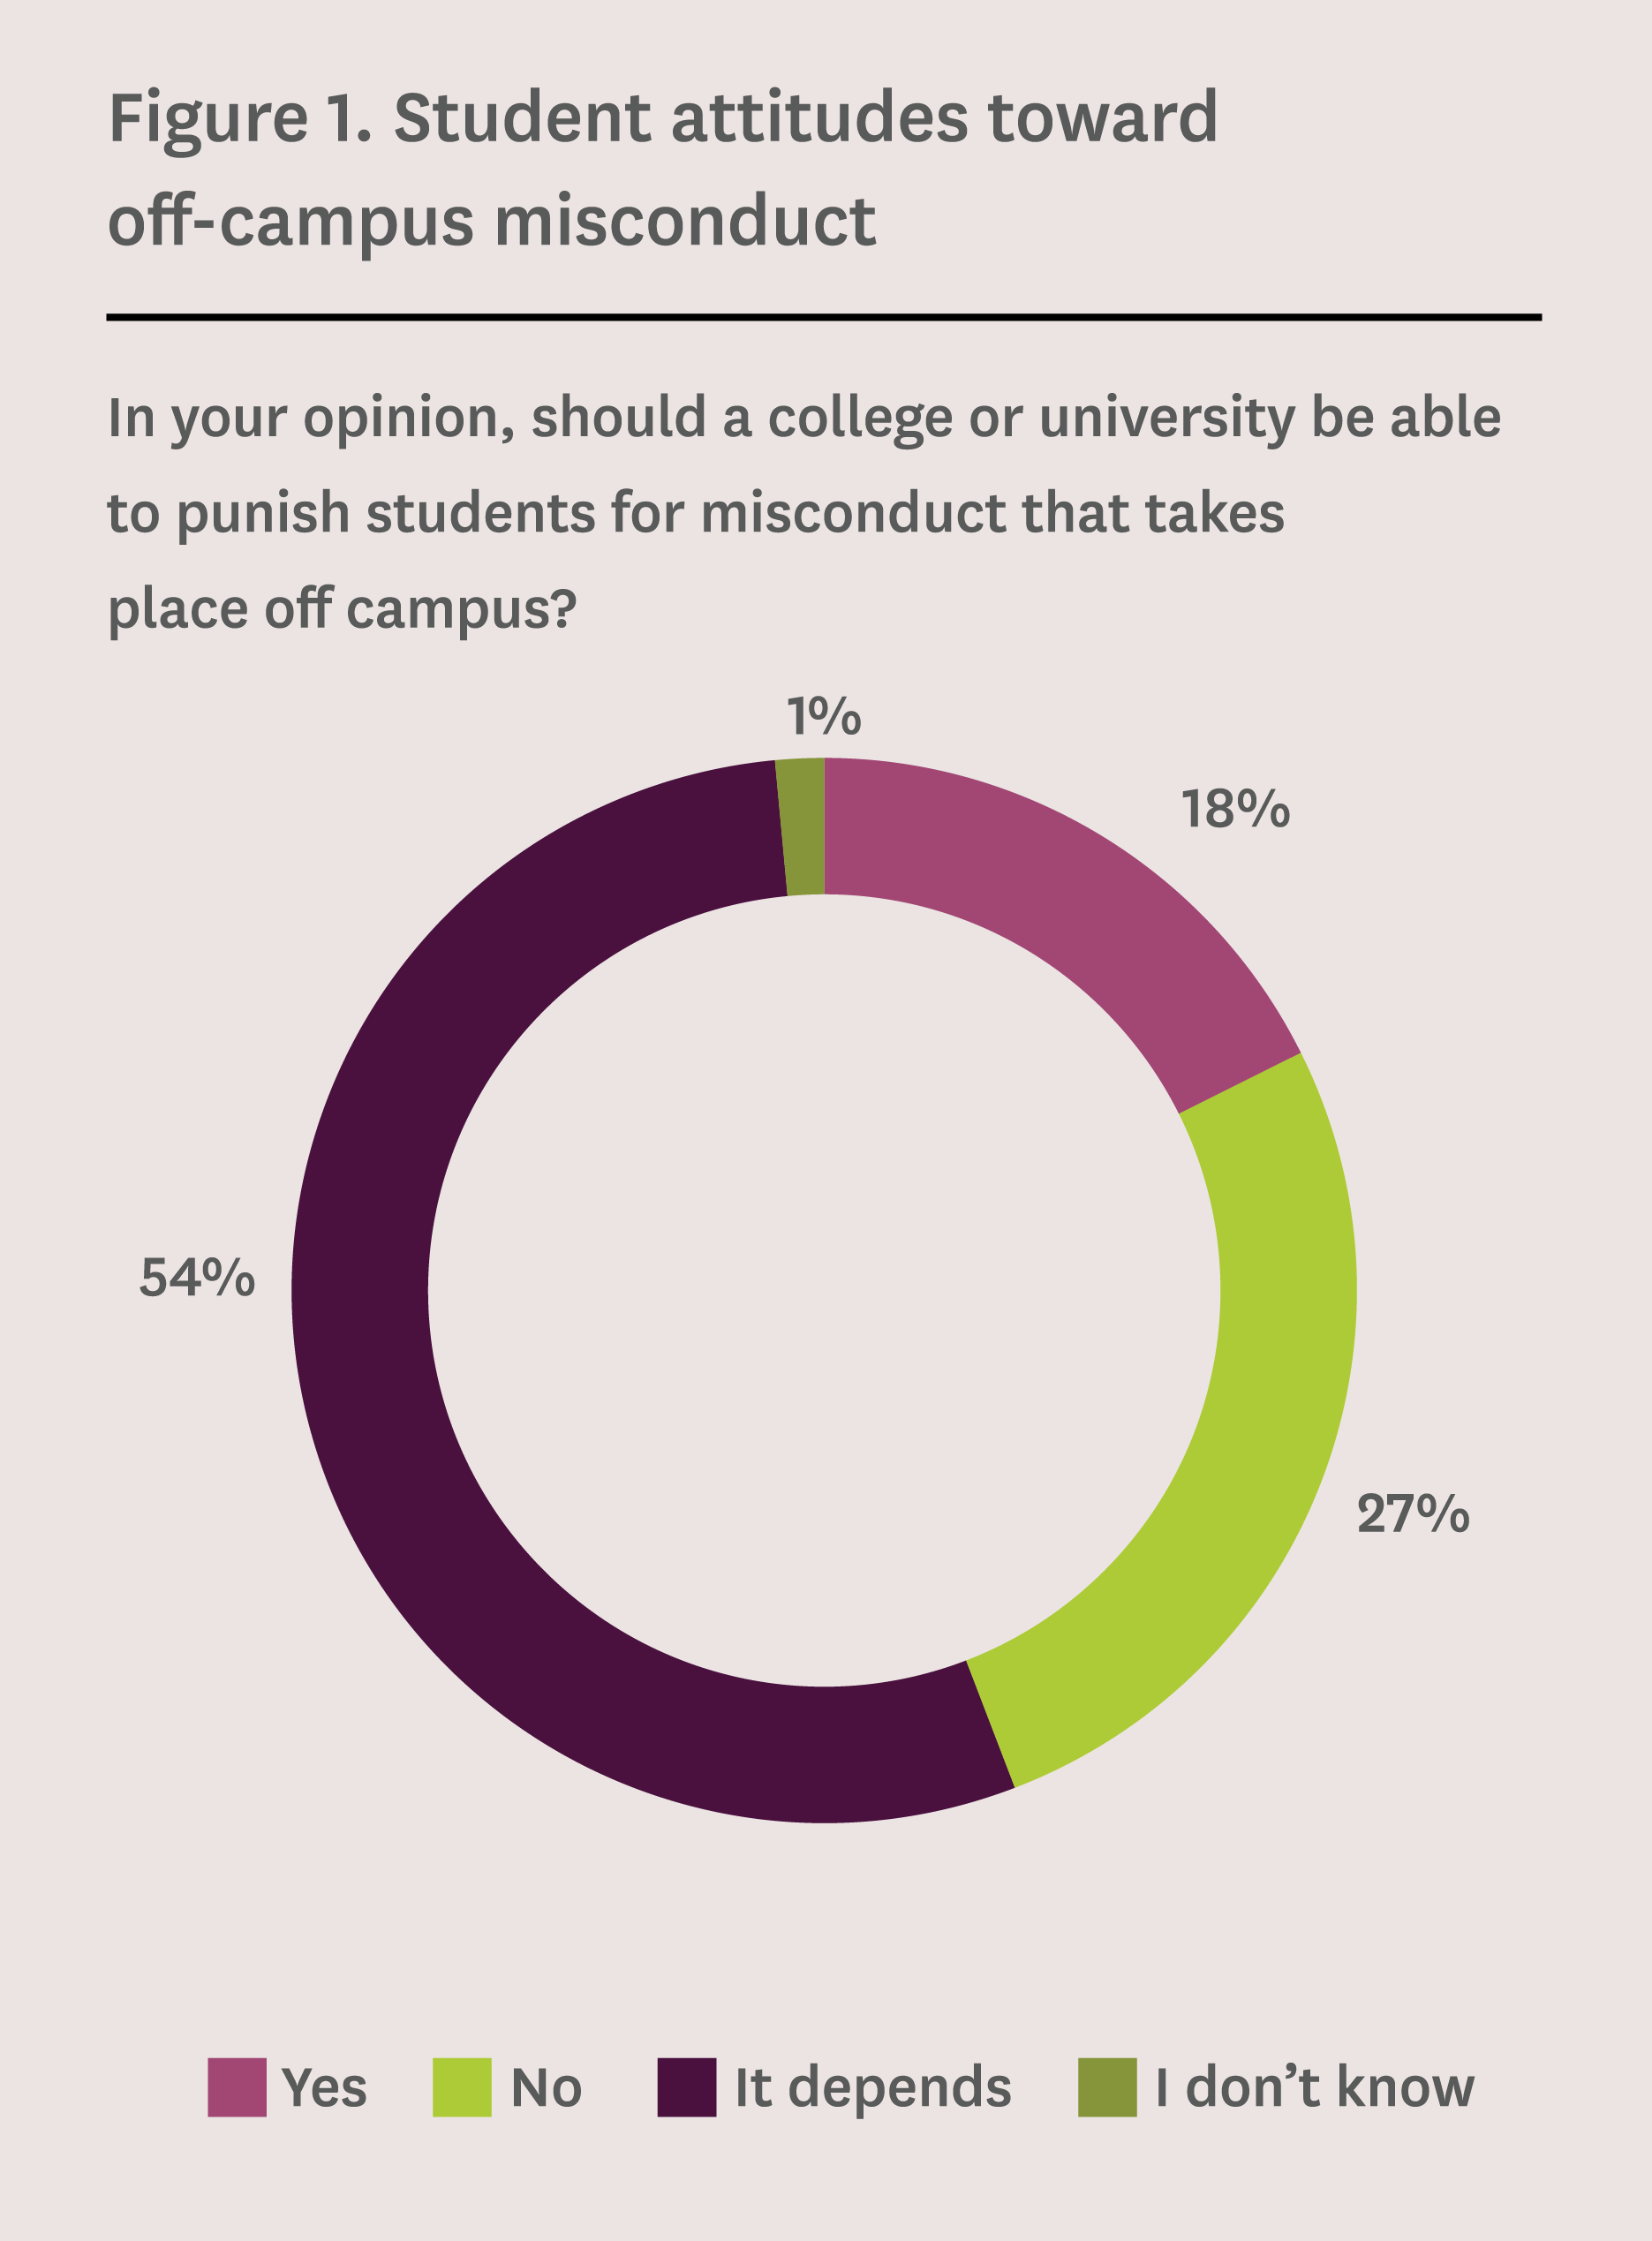 Figure 1. student attitudes toward off-campus misconduct